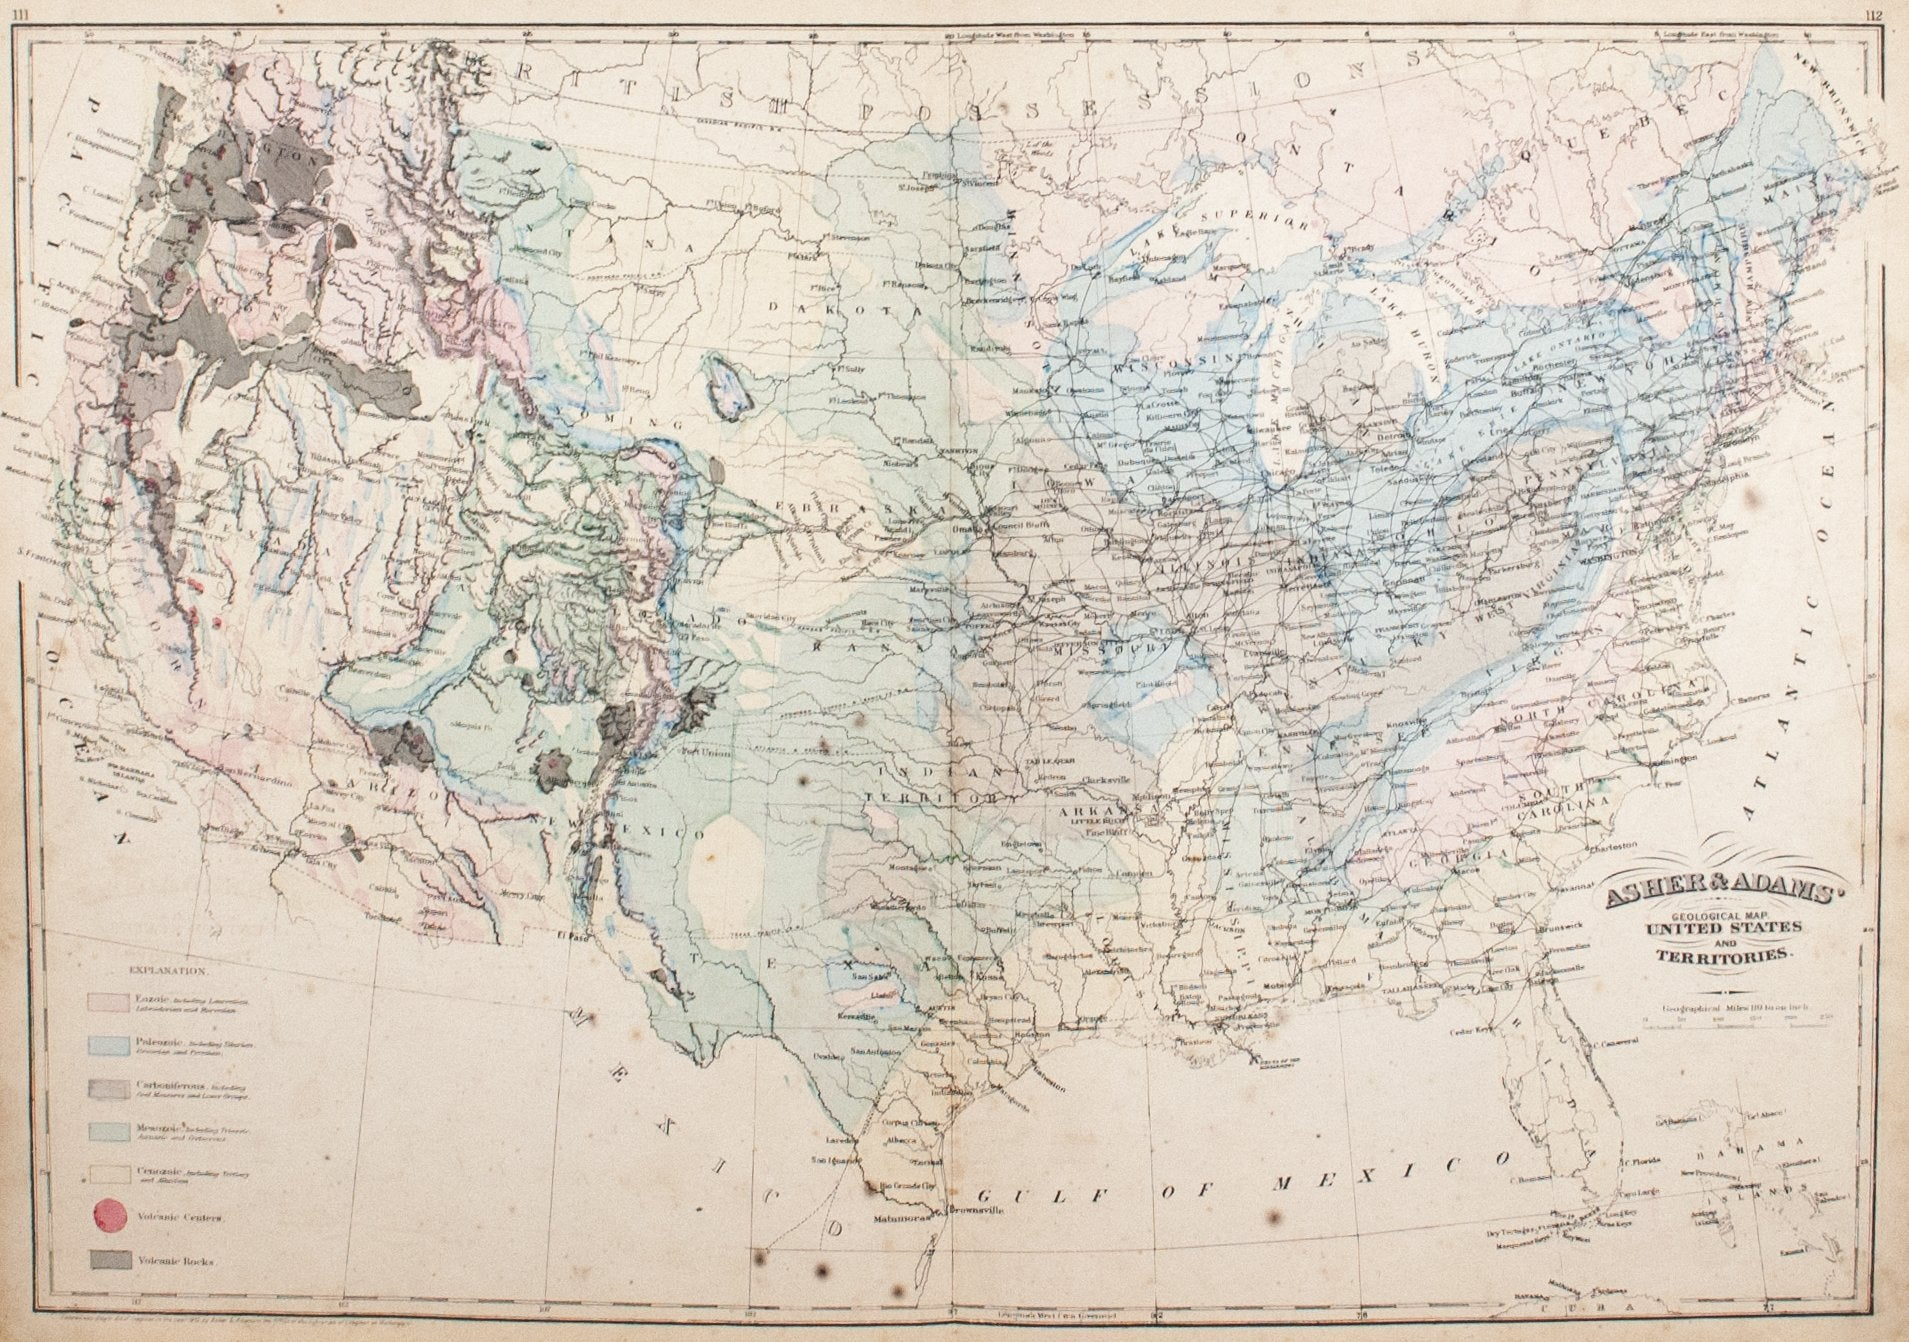 1872 Asher & Adams United States and Territories - Historic Accents